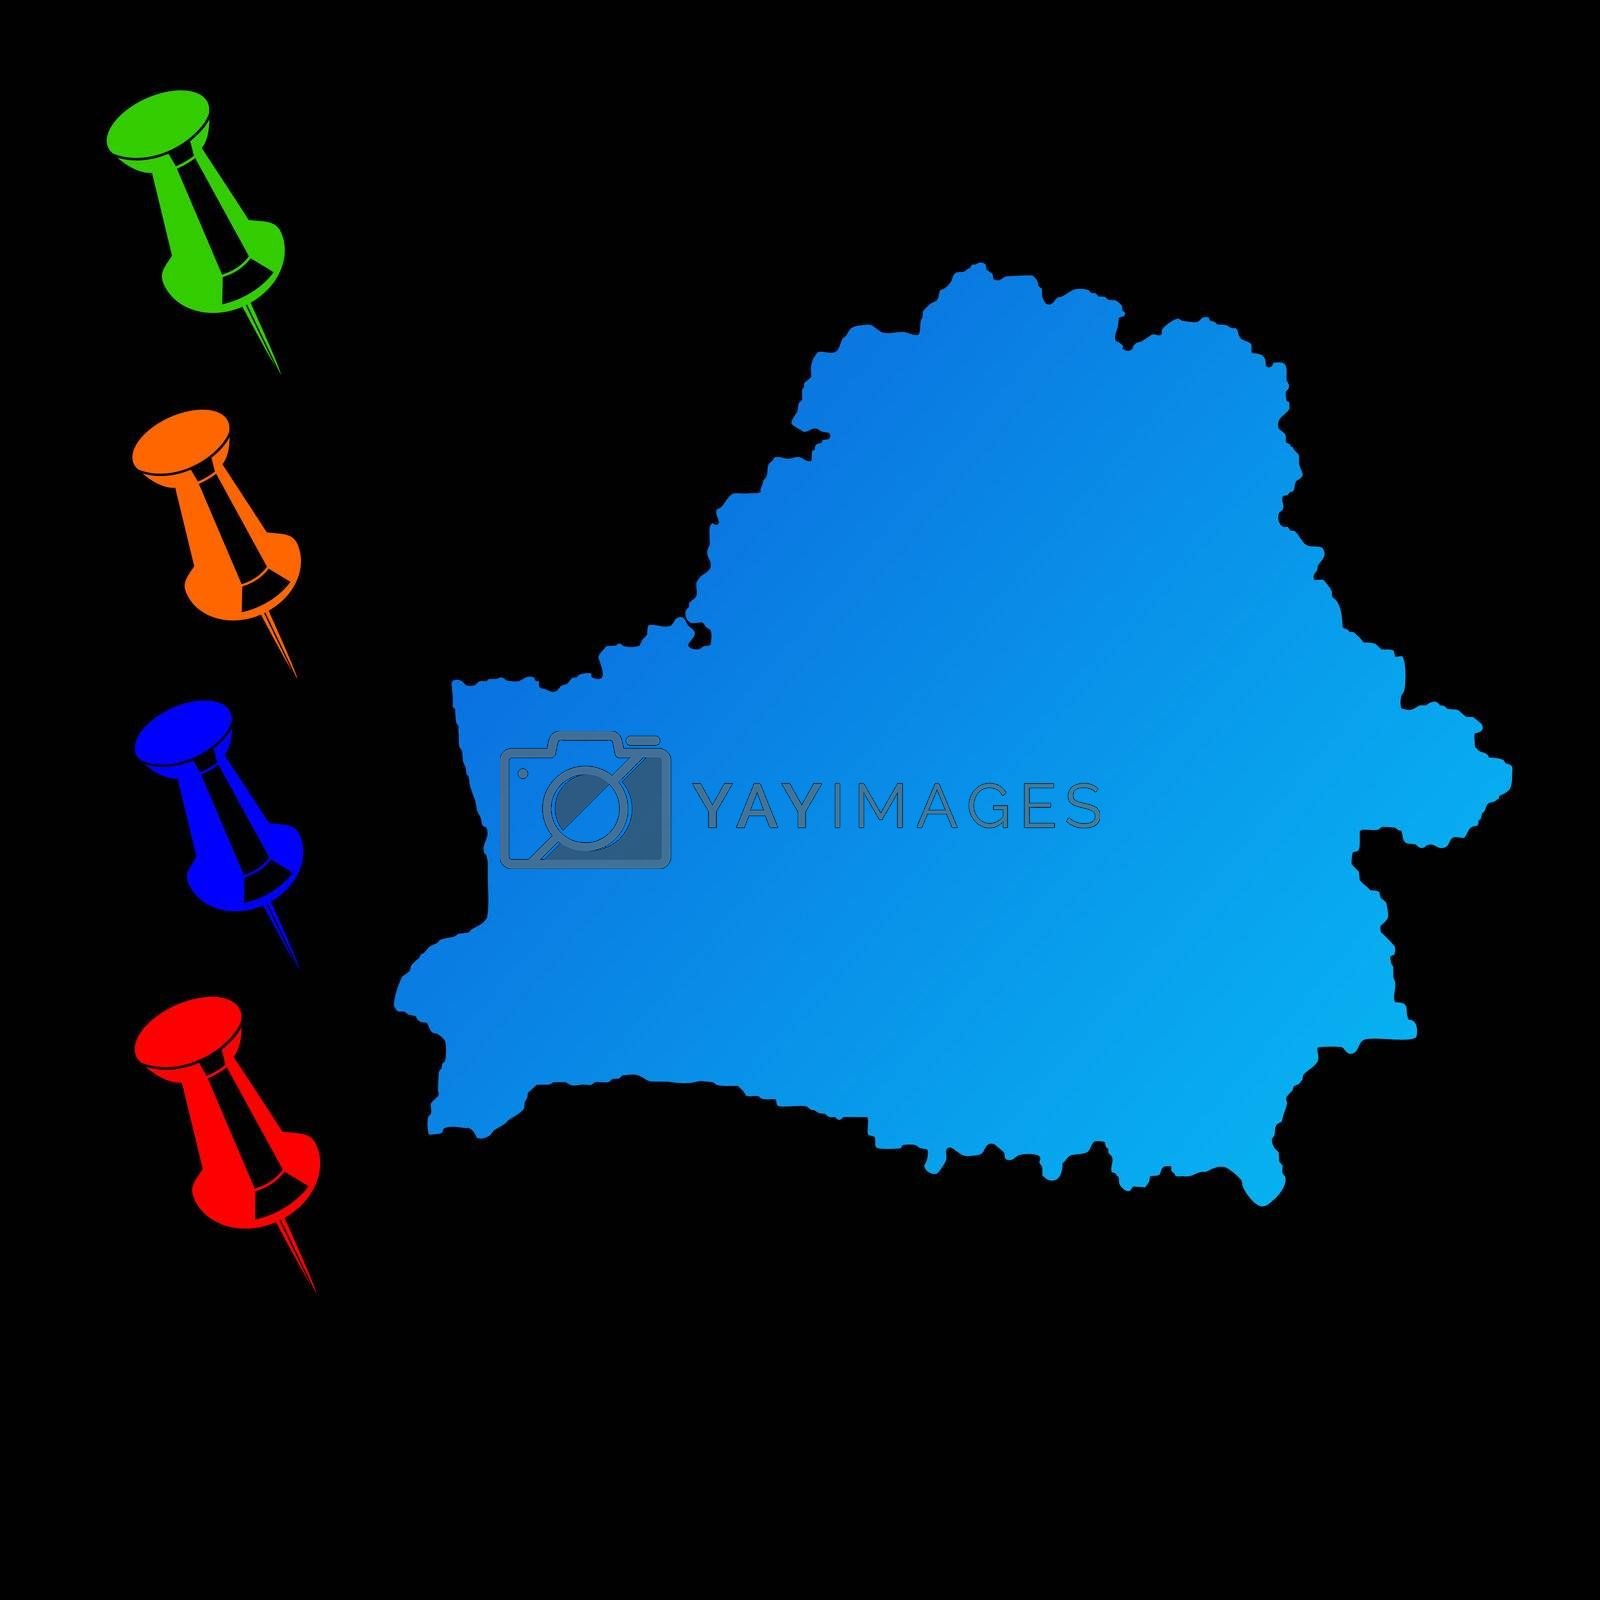 Belarus travel map with push pins on black background.